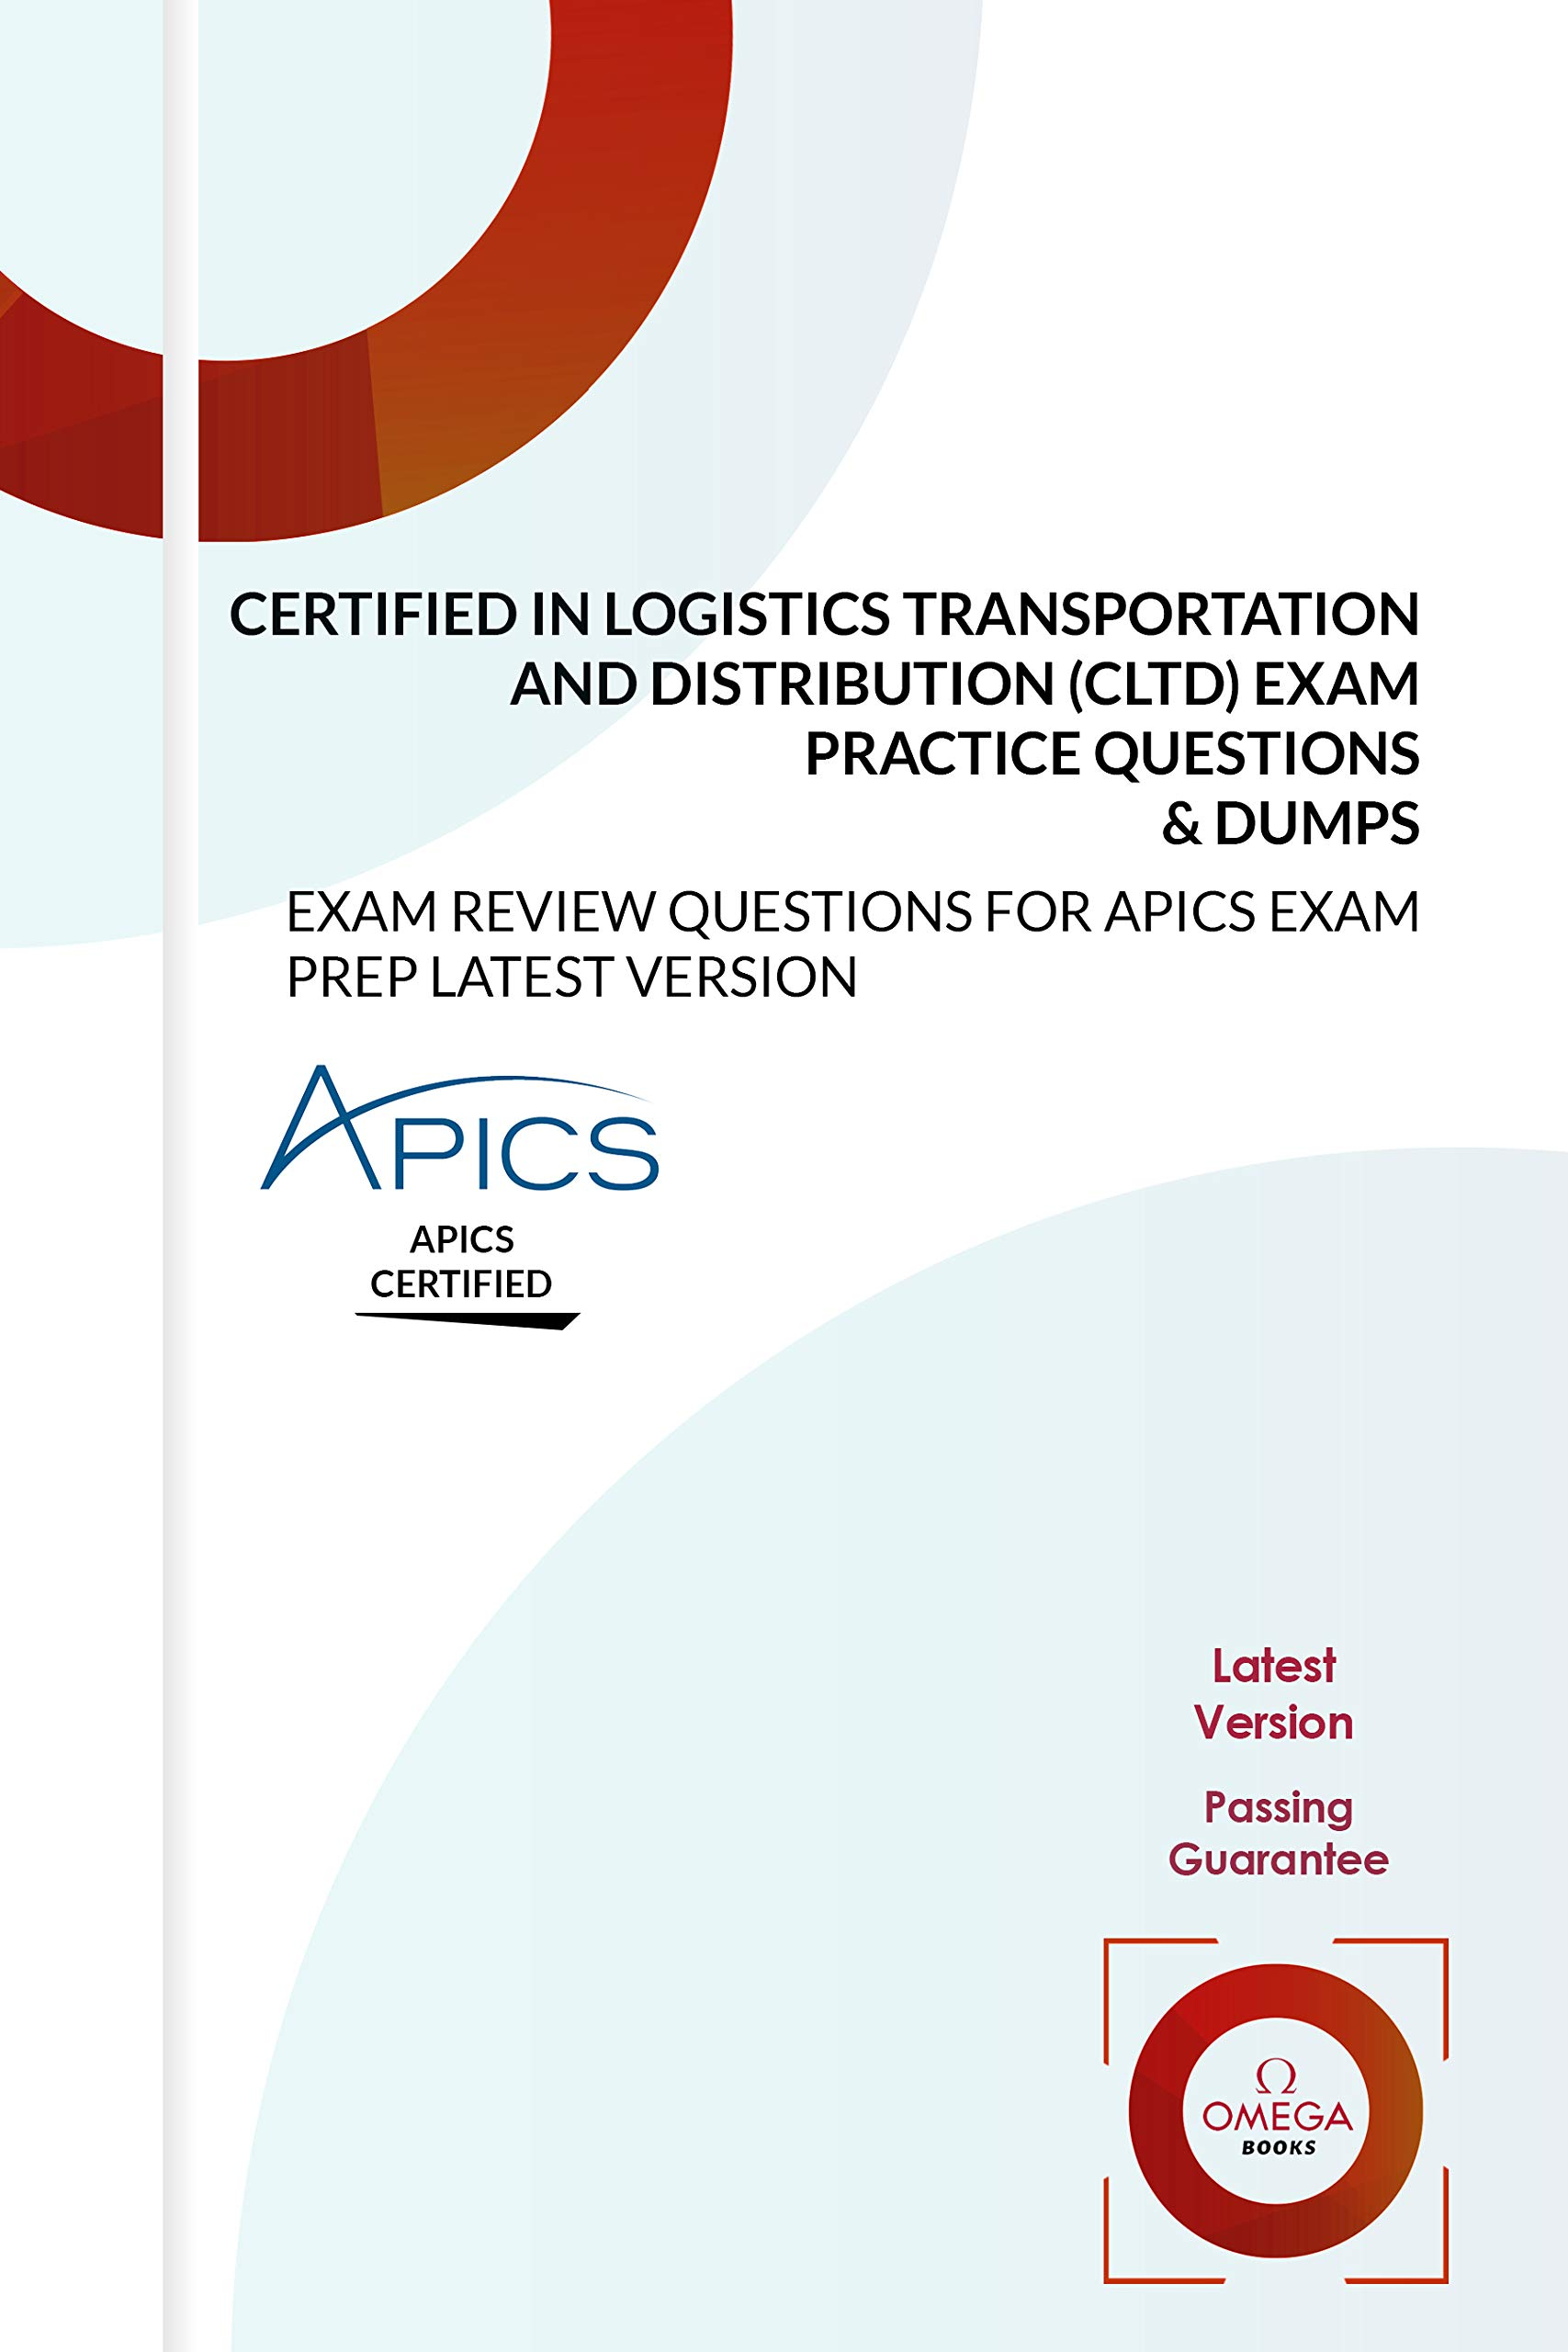 Certified in Logistics, Transportation and Distribution (CLTD) Exam Practice Questions & Dumps: EXAM REVIEW QUESTIONS for APICS EXAM PREP LATEST VERSION